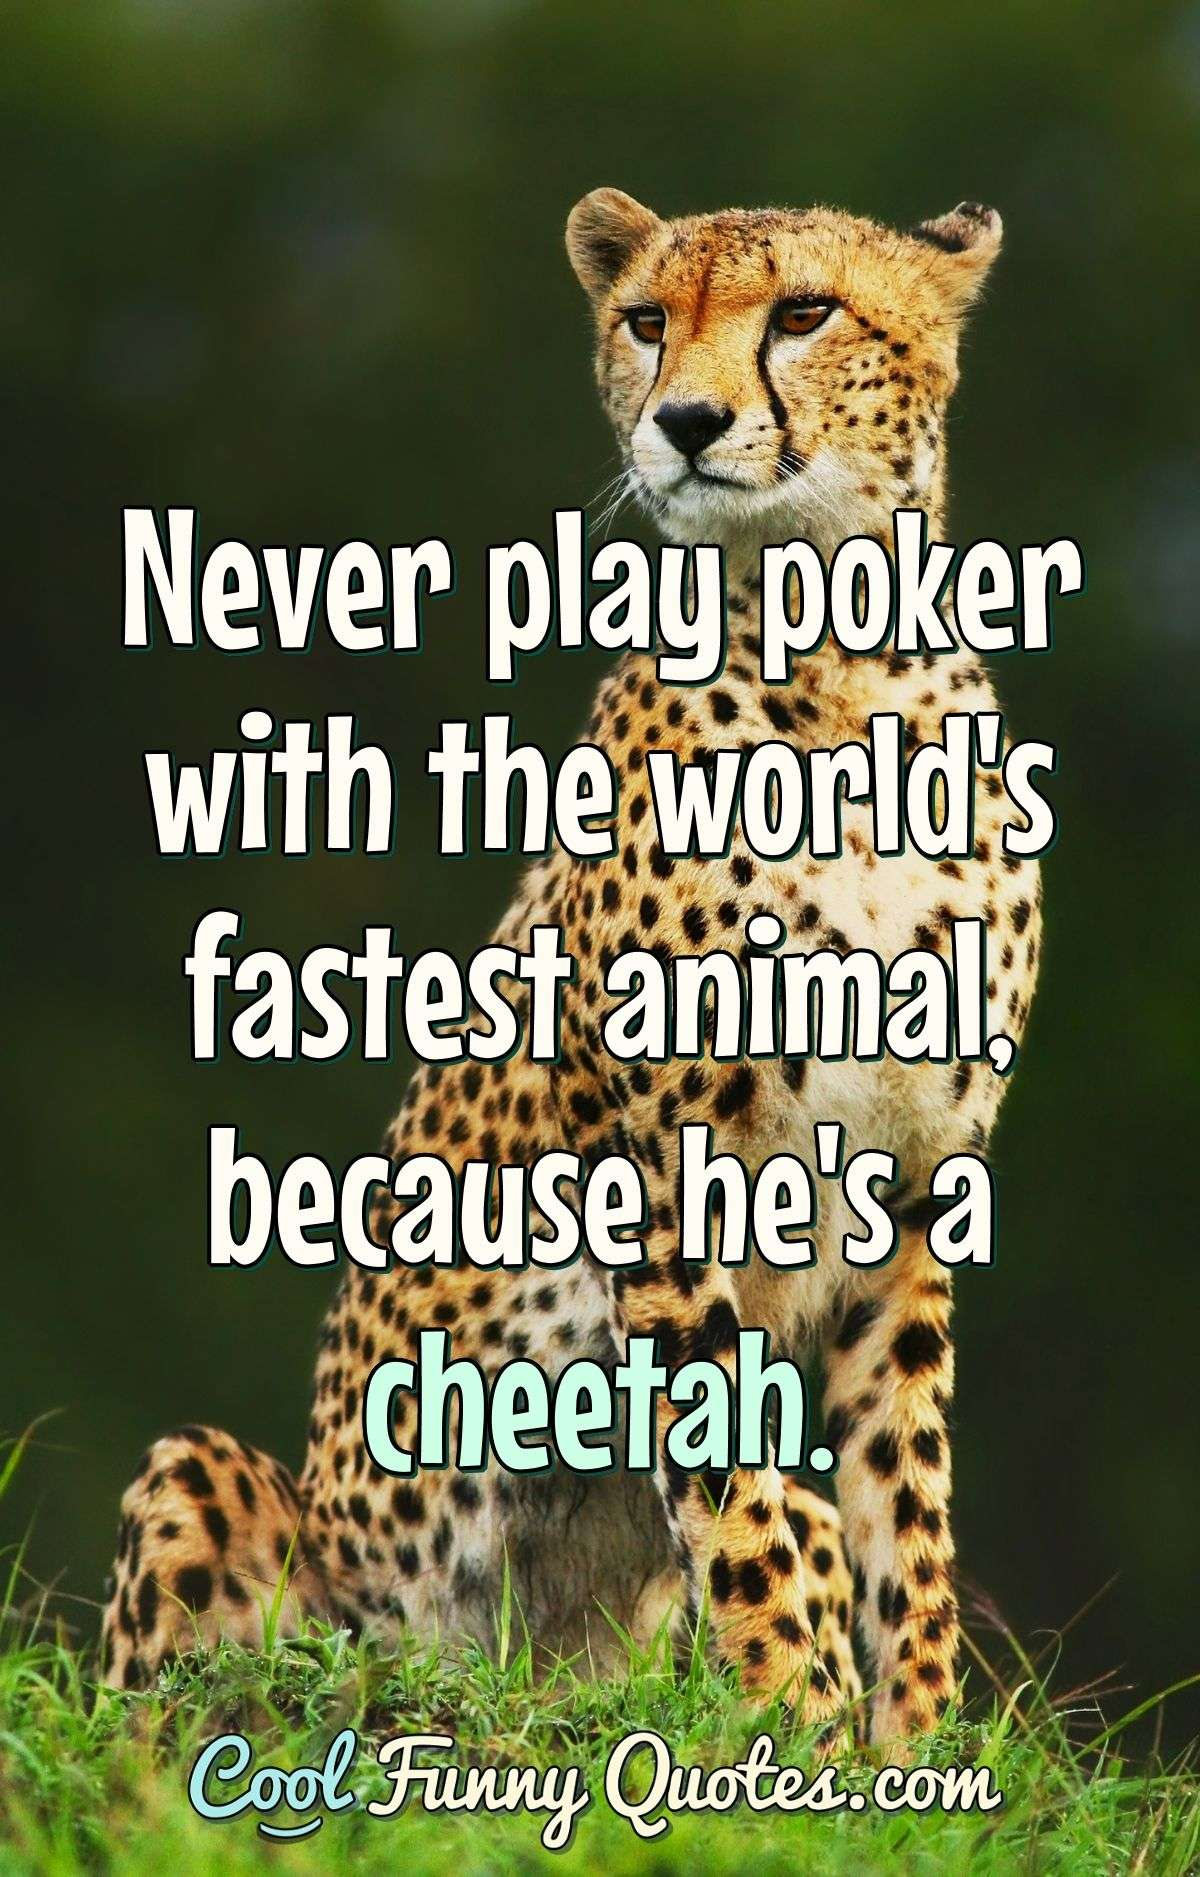 Never play poker with the world's fastest animal, because he's a cheetah. - Anonymous